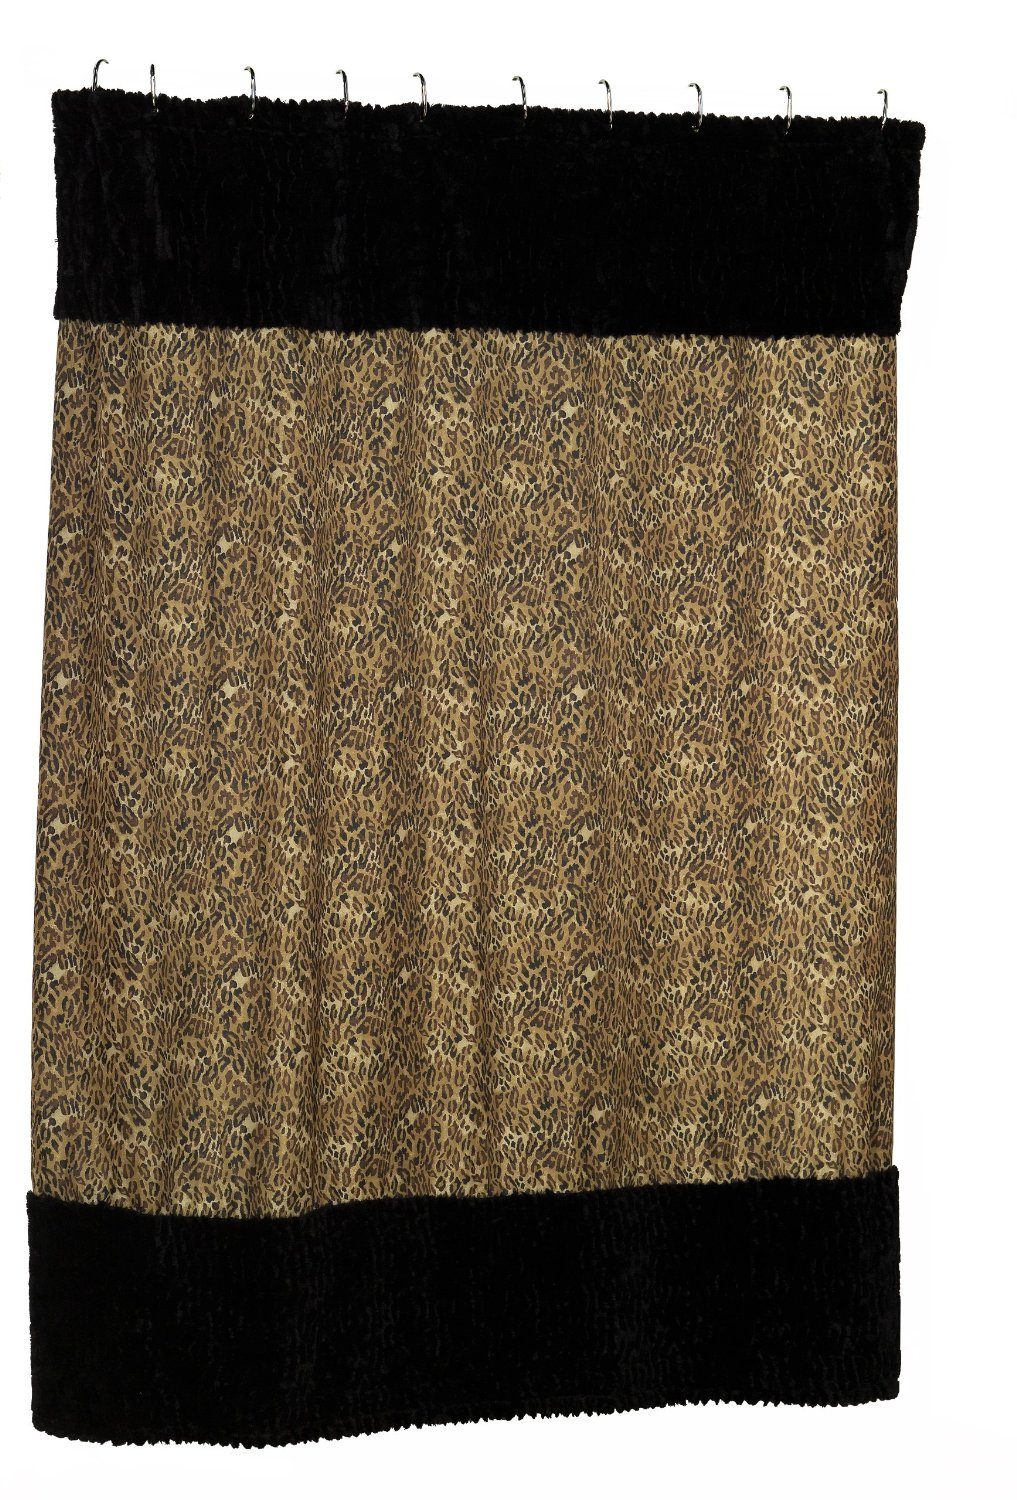 Get Quotations Carnation Home Fashions Animal Instincts Sable And Leopard Faux Fur Trimmed Shower Curtain